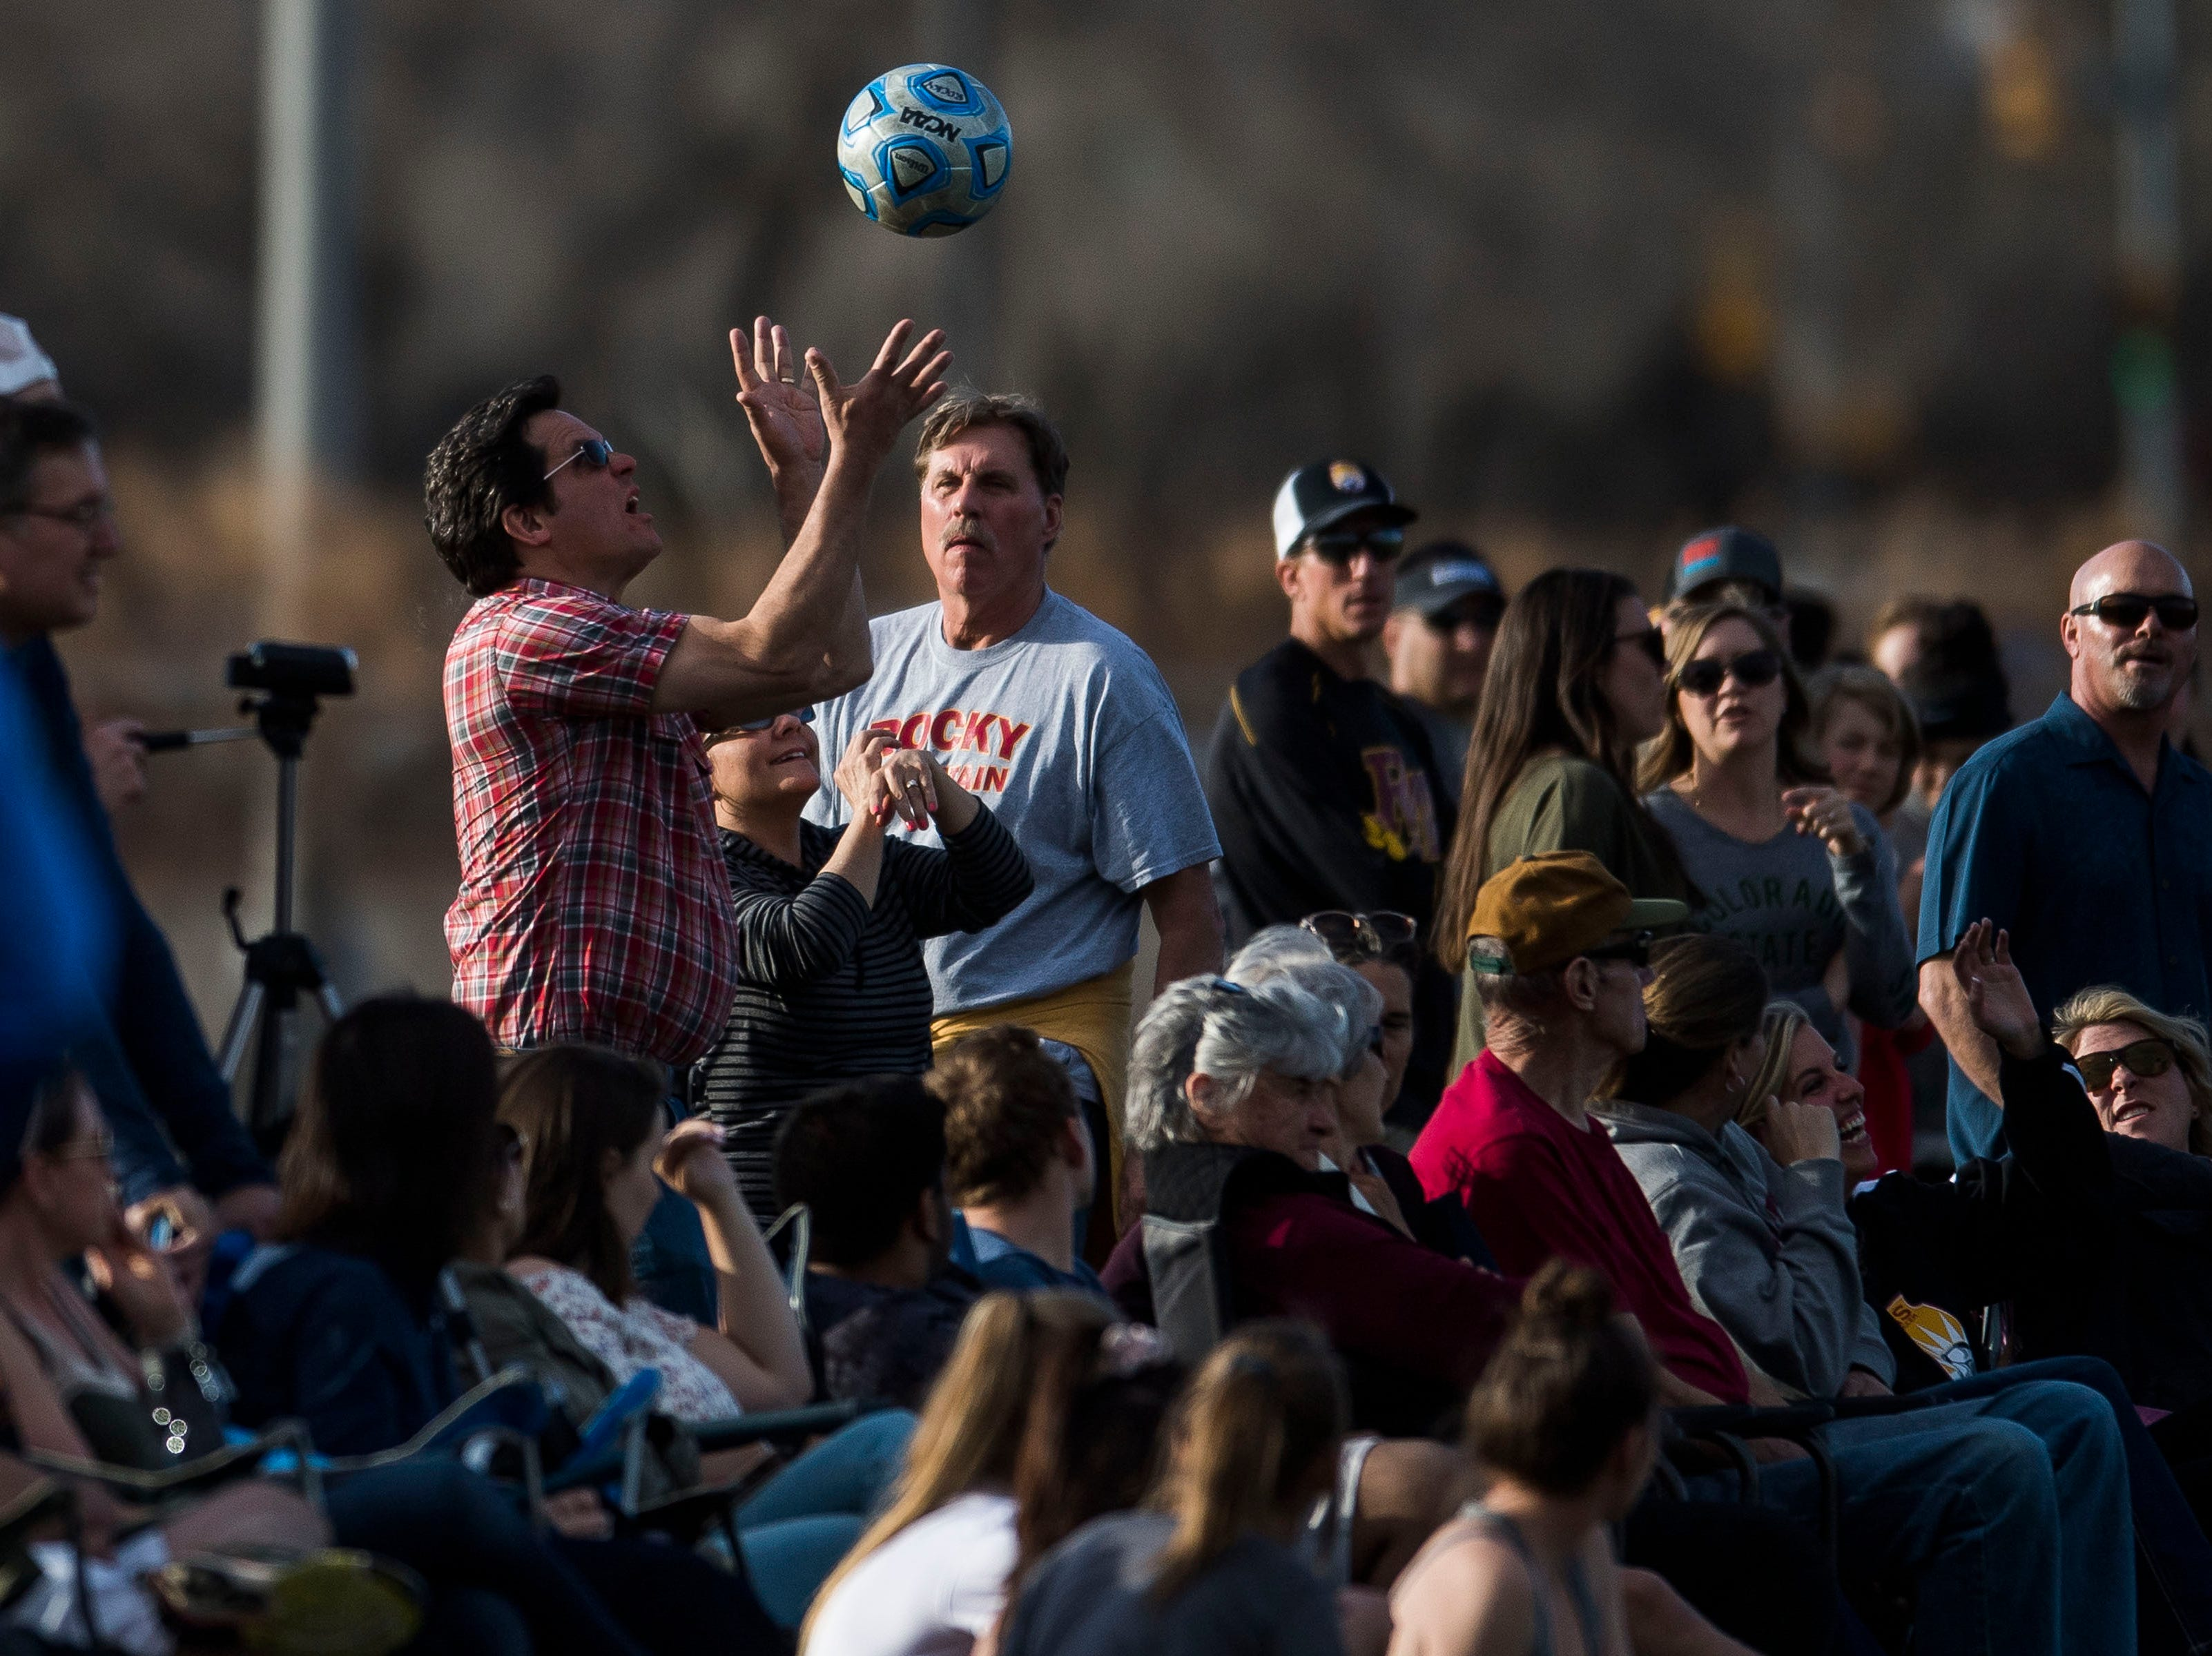 A fan catches an out-of-bounds ball during a game between Rocky Mountain High School and Fossil Ridge High School on Friday, April 4, 2019, at Colorado State University's soccer field in Fort Collins, Colo.